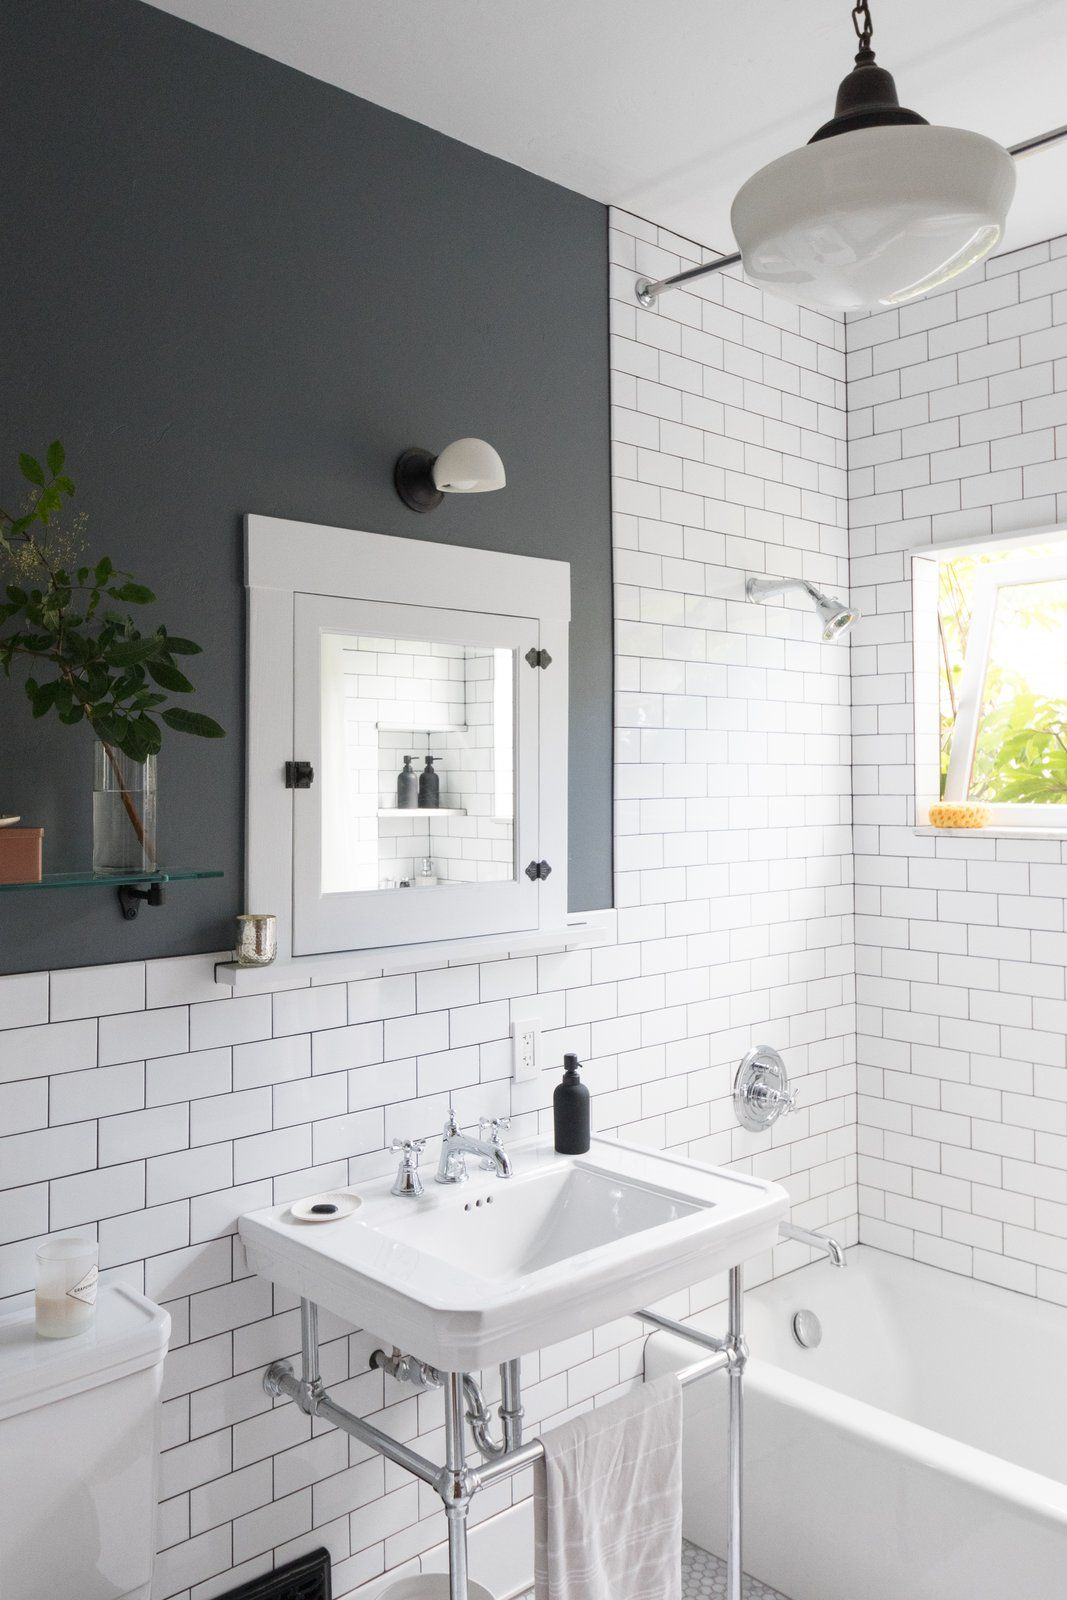 White Subway Tiles And Dark Grout Give The New Bathroom A Crisp